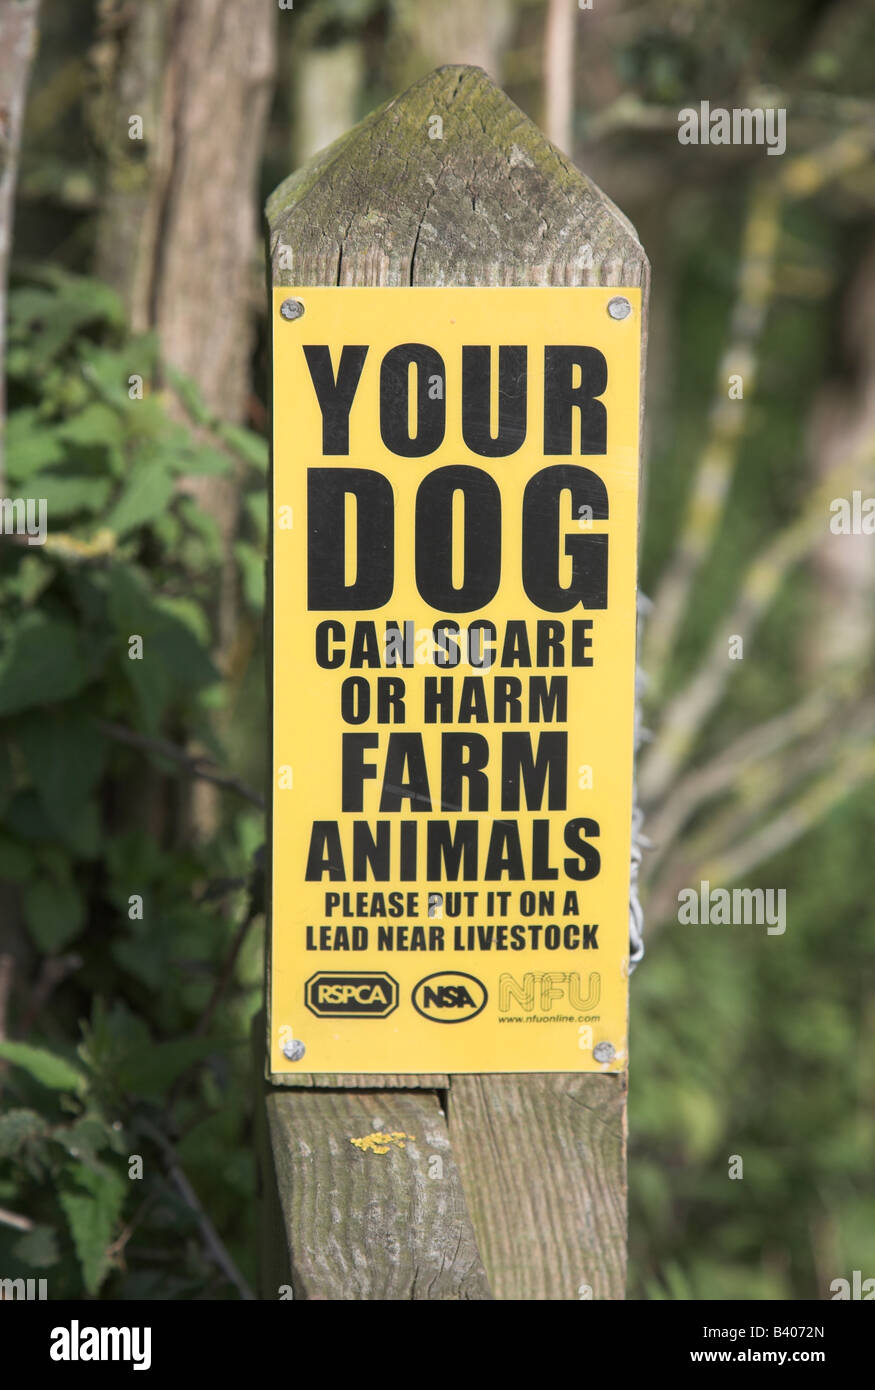 Your dog can scare or harm farm animals yellow sign - Stock Image